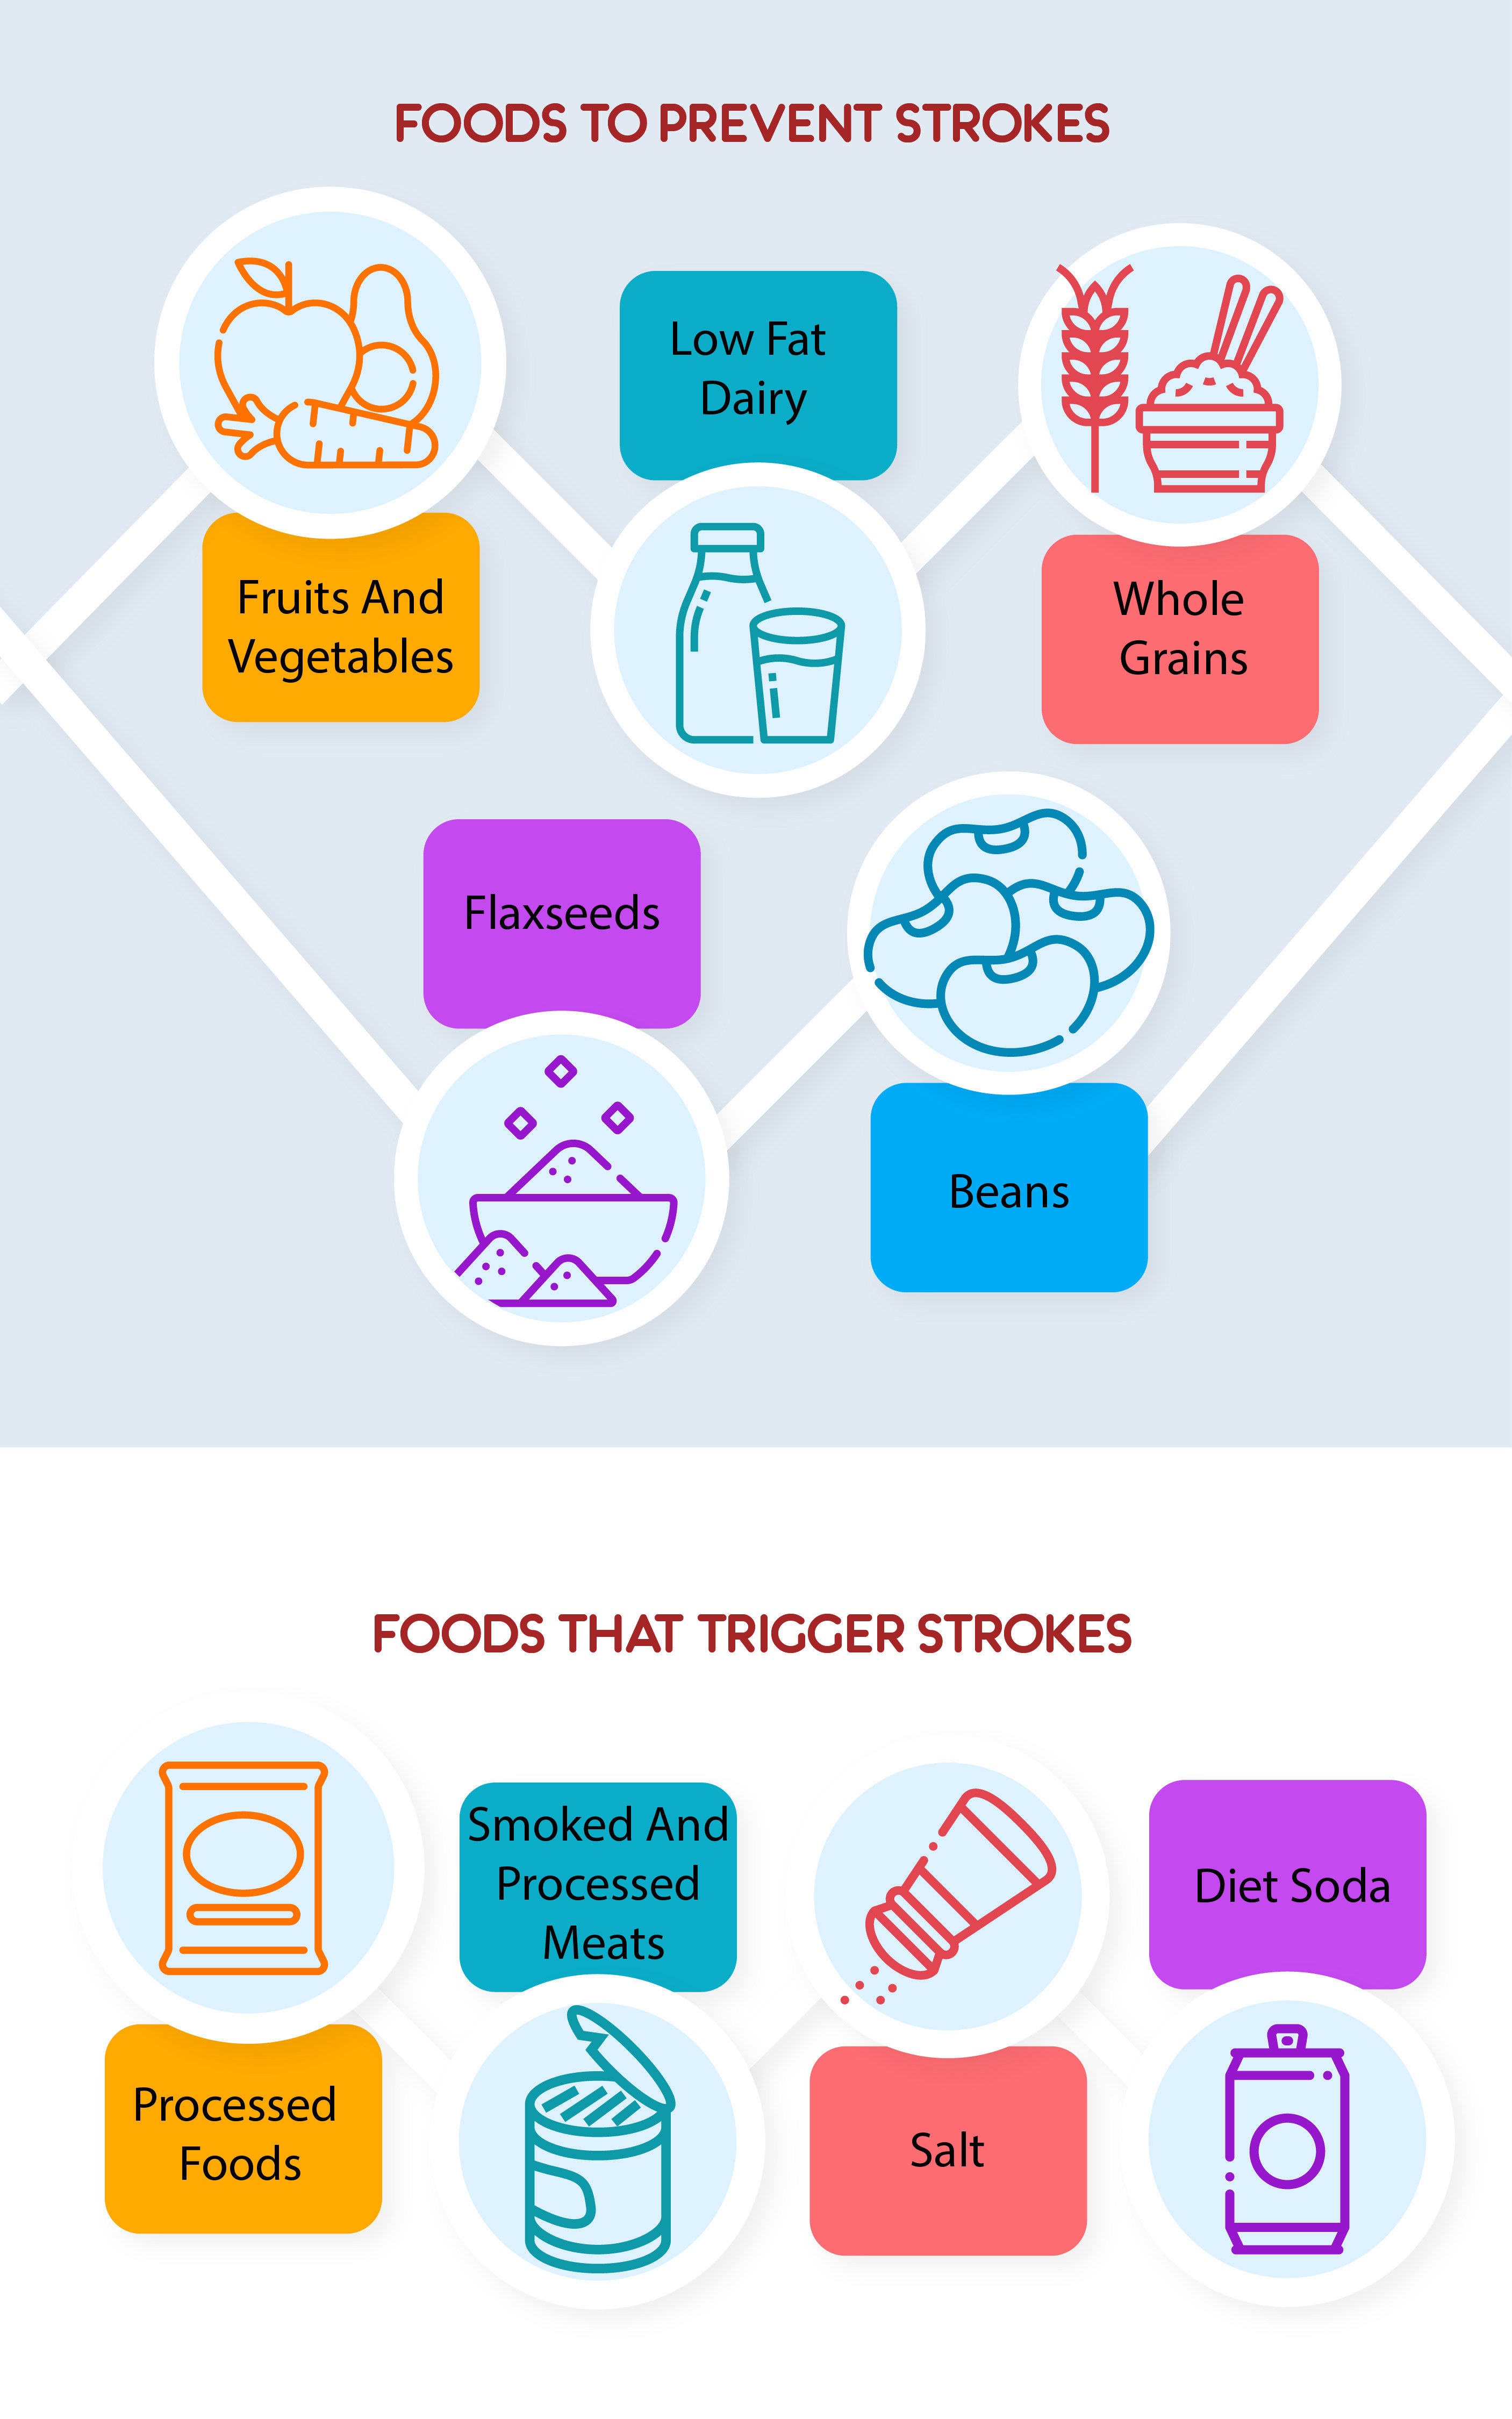 preventing a stroke with foods